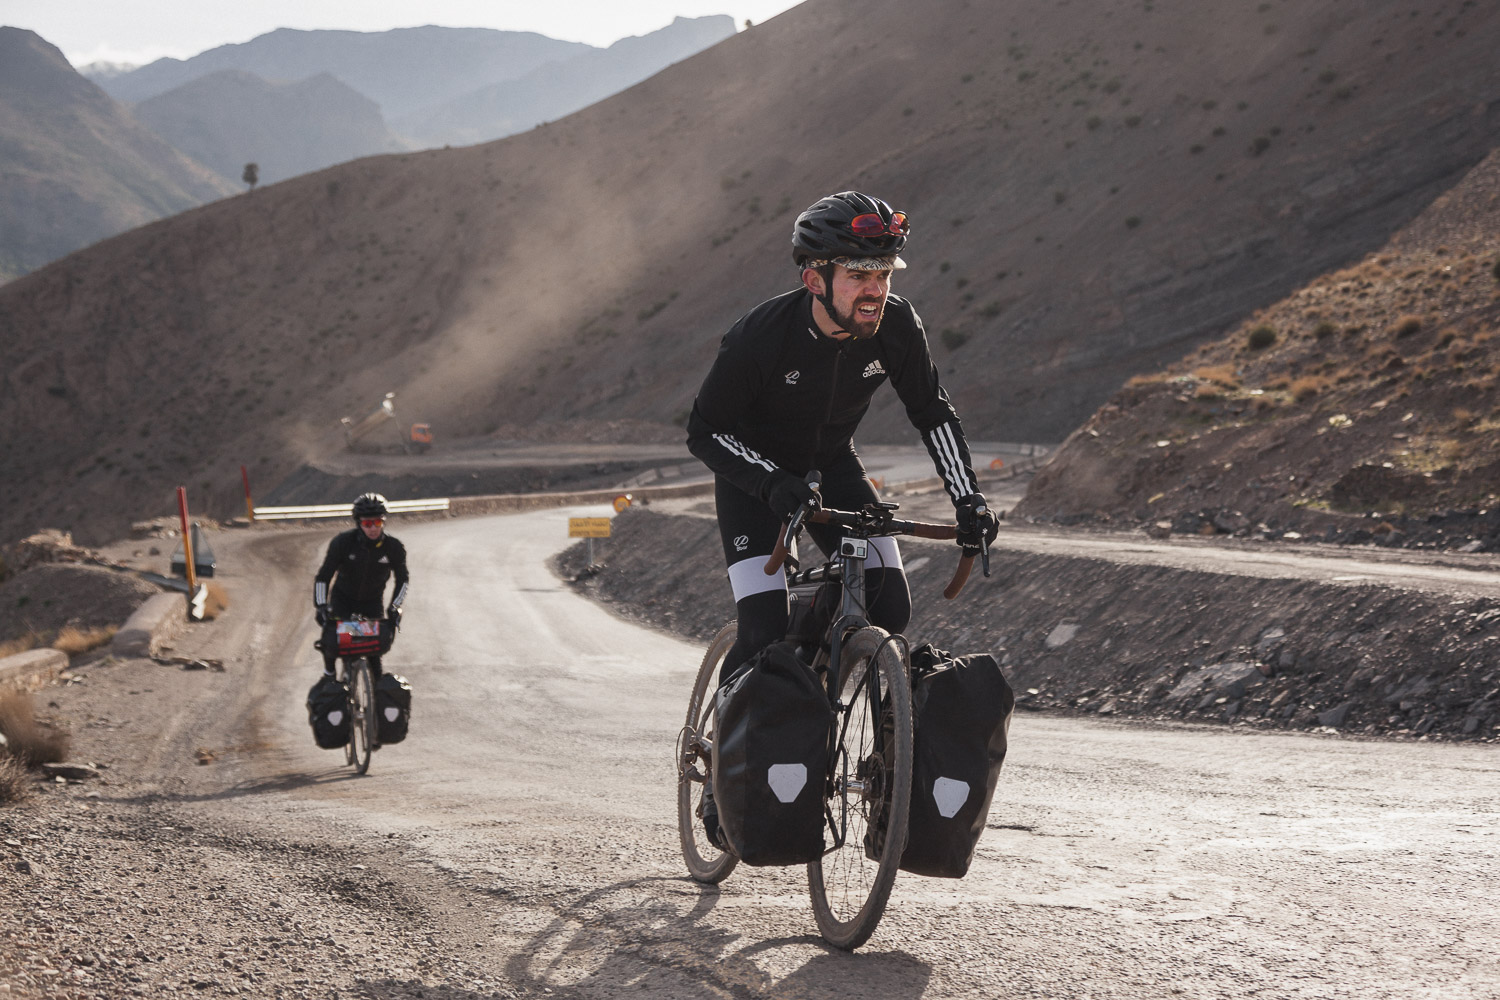 8bar bikes adventures morocco gravel 20151211 0004 bearbeitet 1 - 8bar Adventures - Morocco - High Atlas - Part 2/2